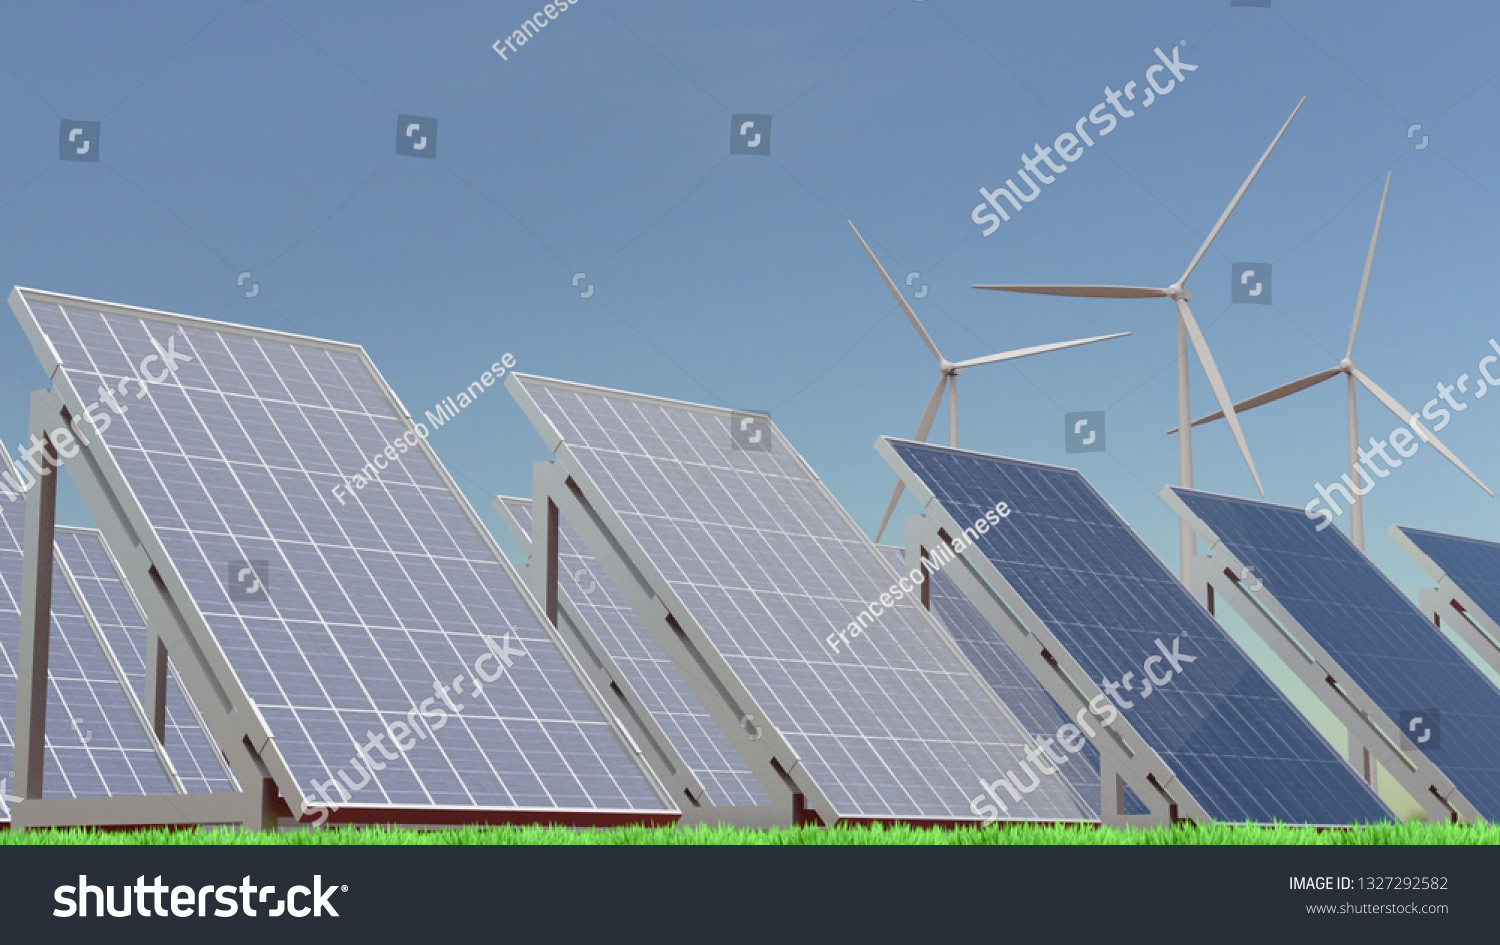 3D rendering illustration of solar panels and wind turbines on a grass field by Francesco Milanese on Shutterstock